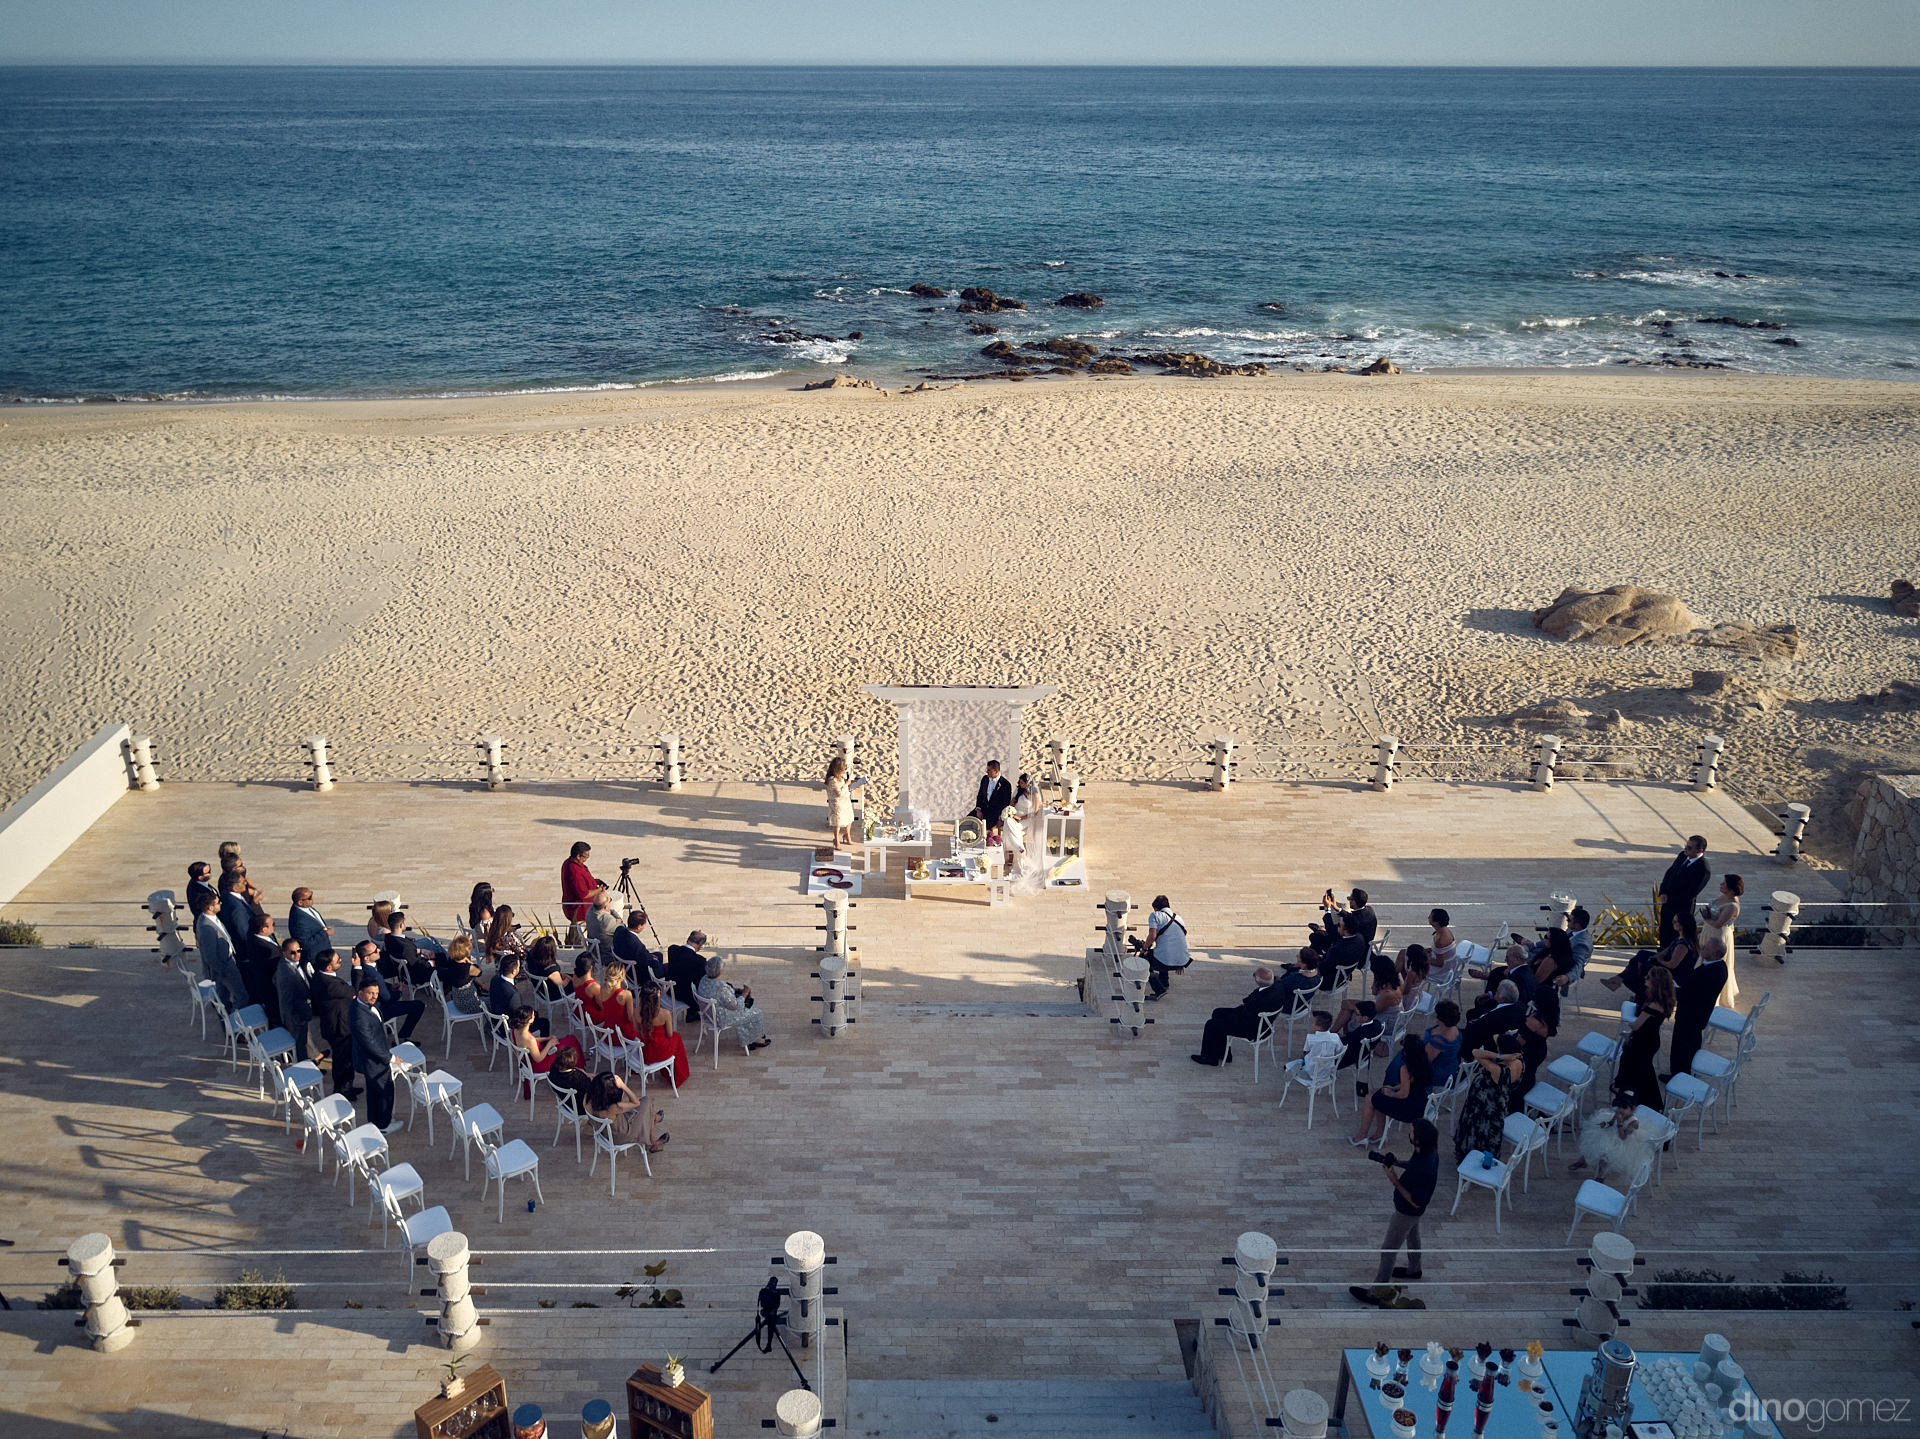 Drone Photo Of A Persian Wedding Ceremony On The Beach In Cabo